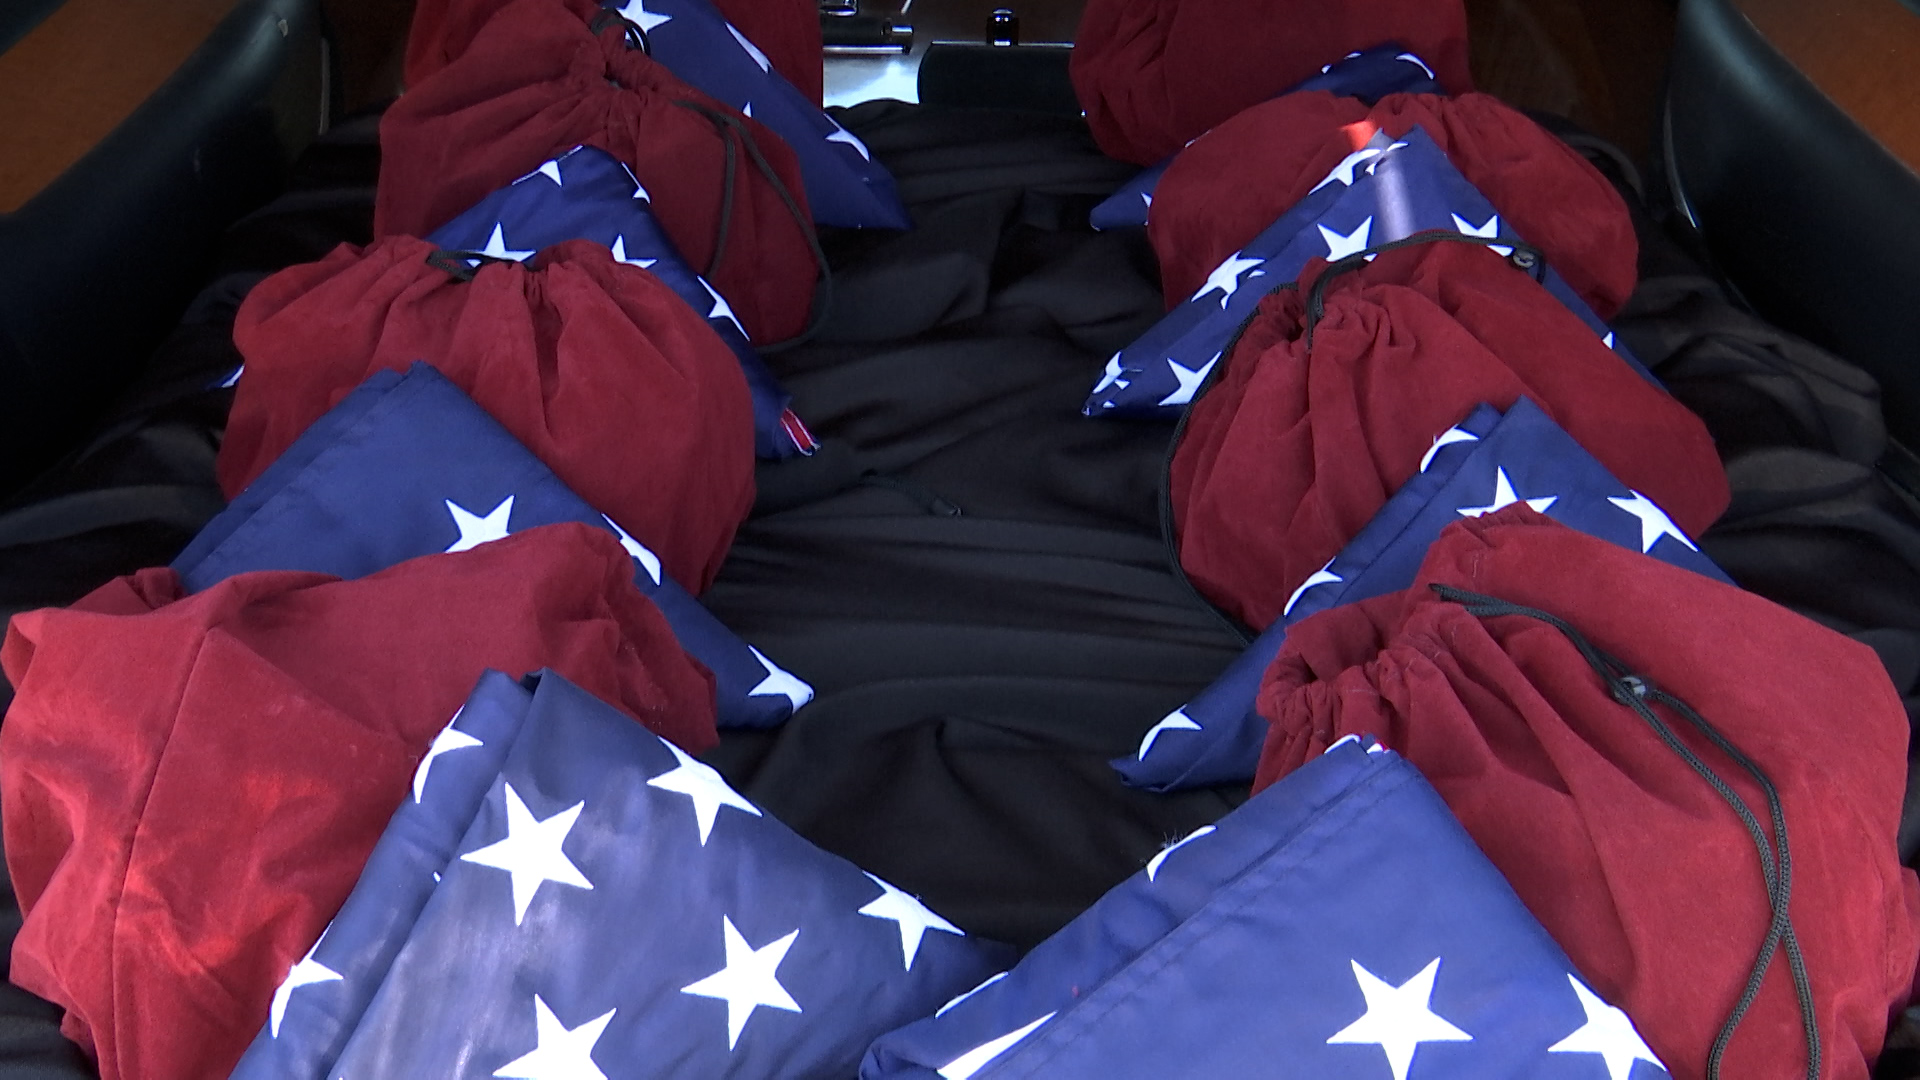 The remains of eight unclaimed veterans passed through Wichita Falls this morning en route from Amarillo to the DFW National Cemetery.